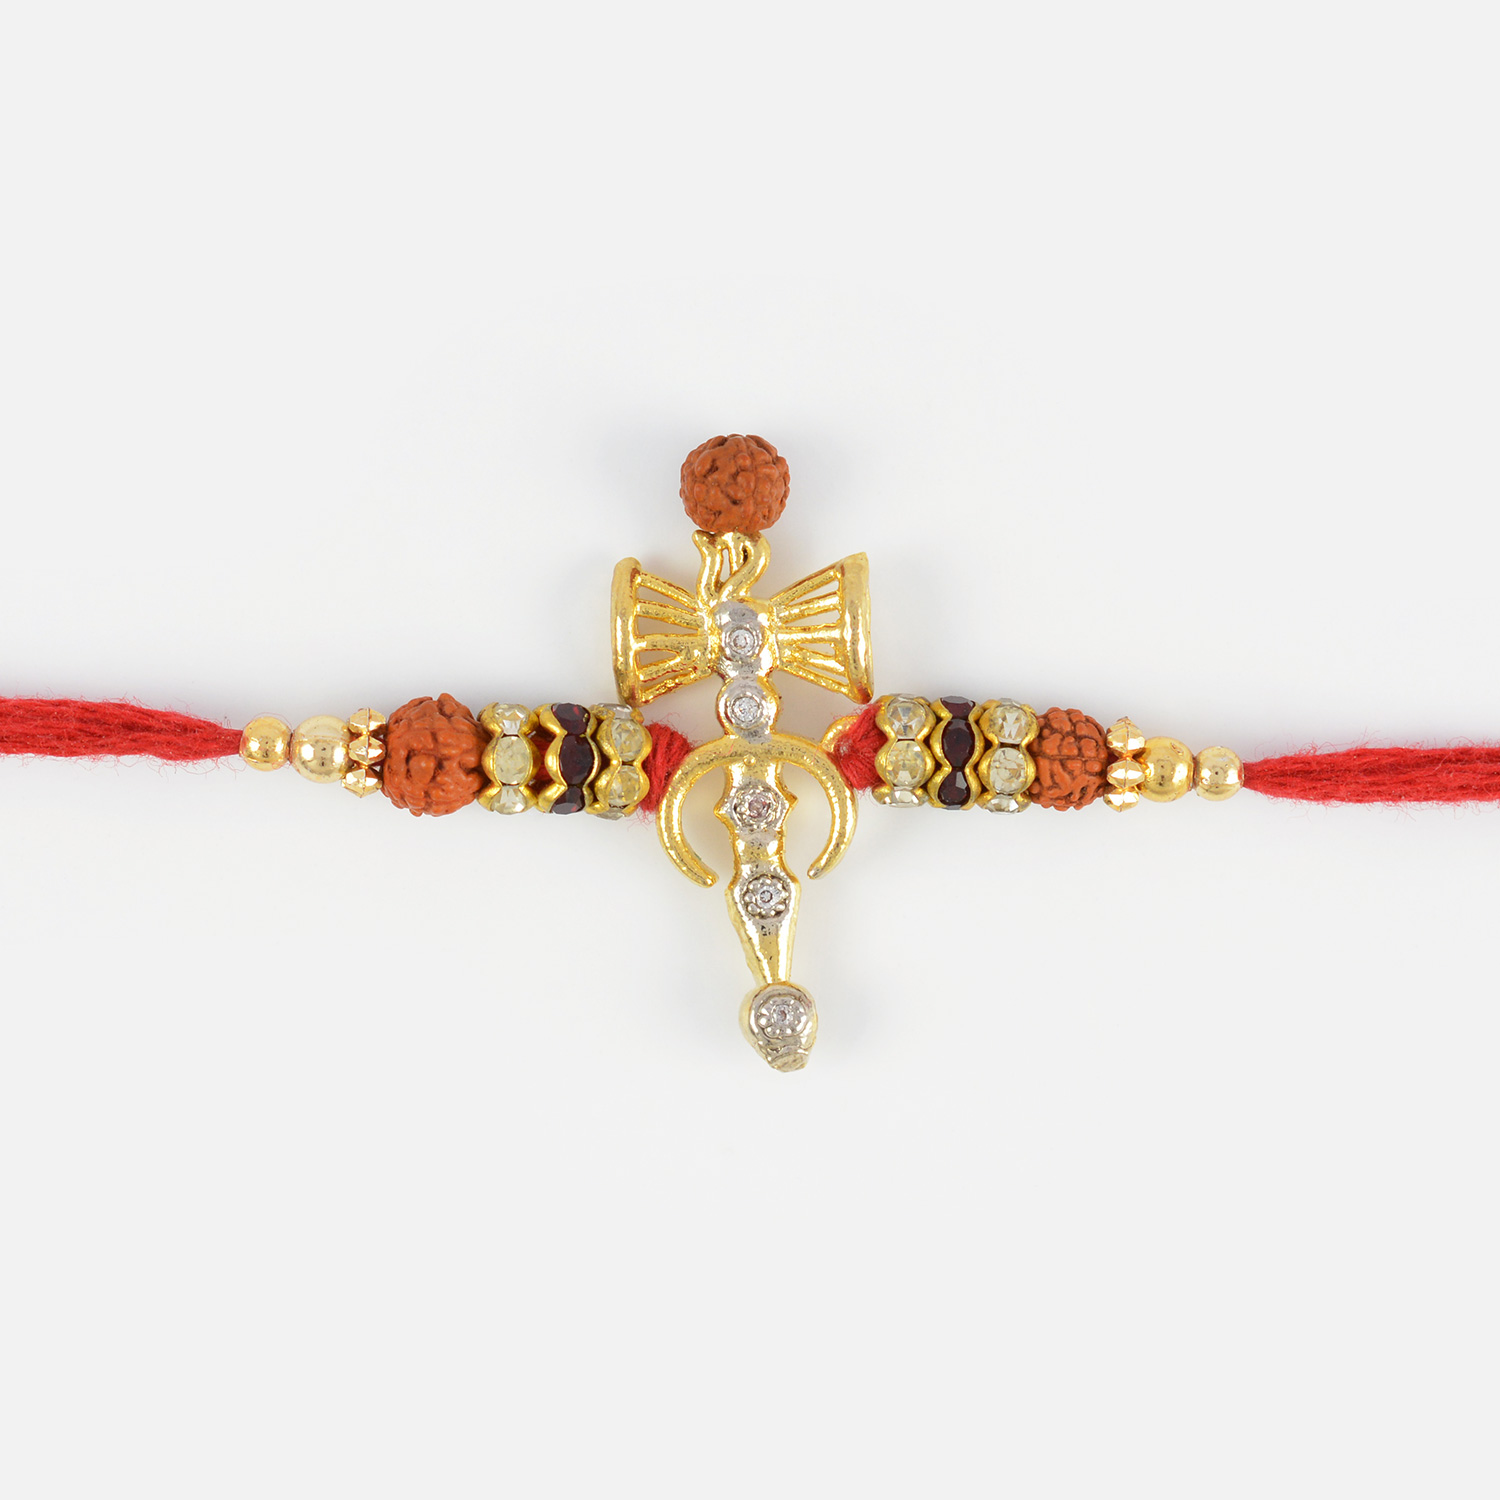 Auspicious Sikh Rakhi with Rudraksh and Diamonds